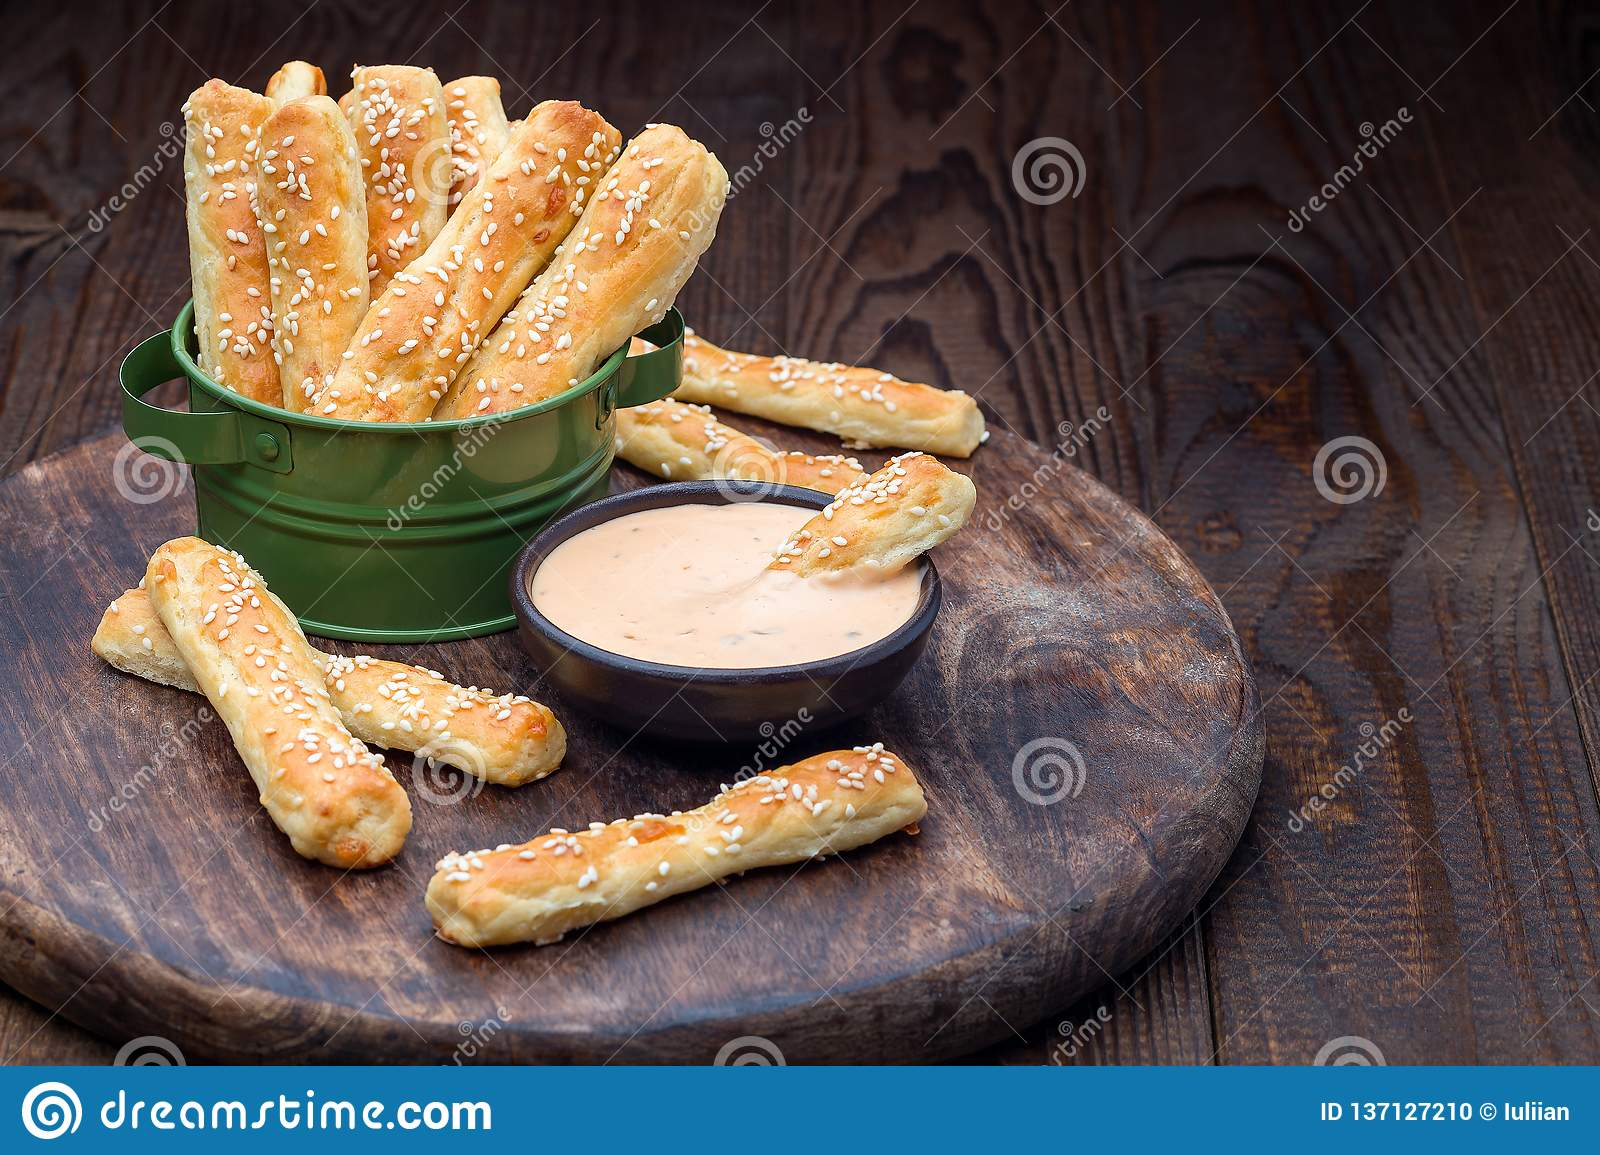 Homemade savory bread sticks with cheese and sesame in a basket, served with sauce on wooden board, horizontal, copy space